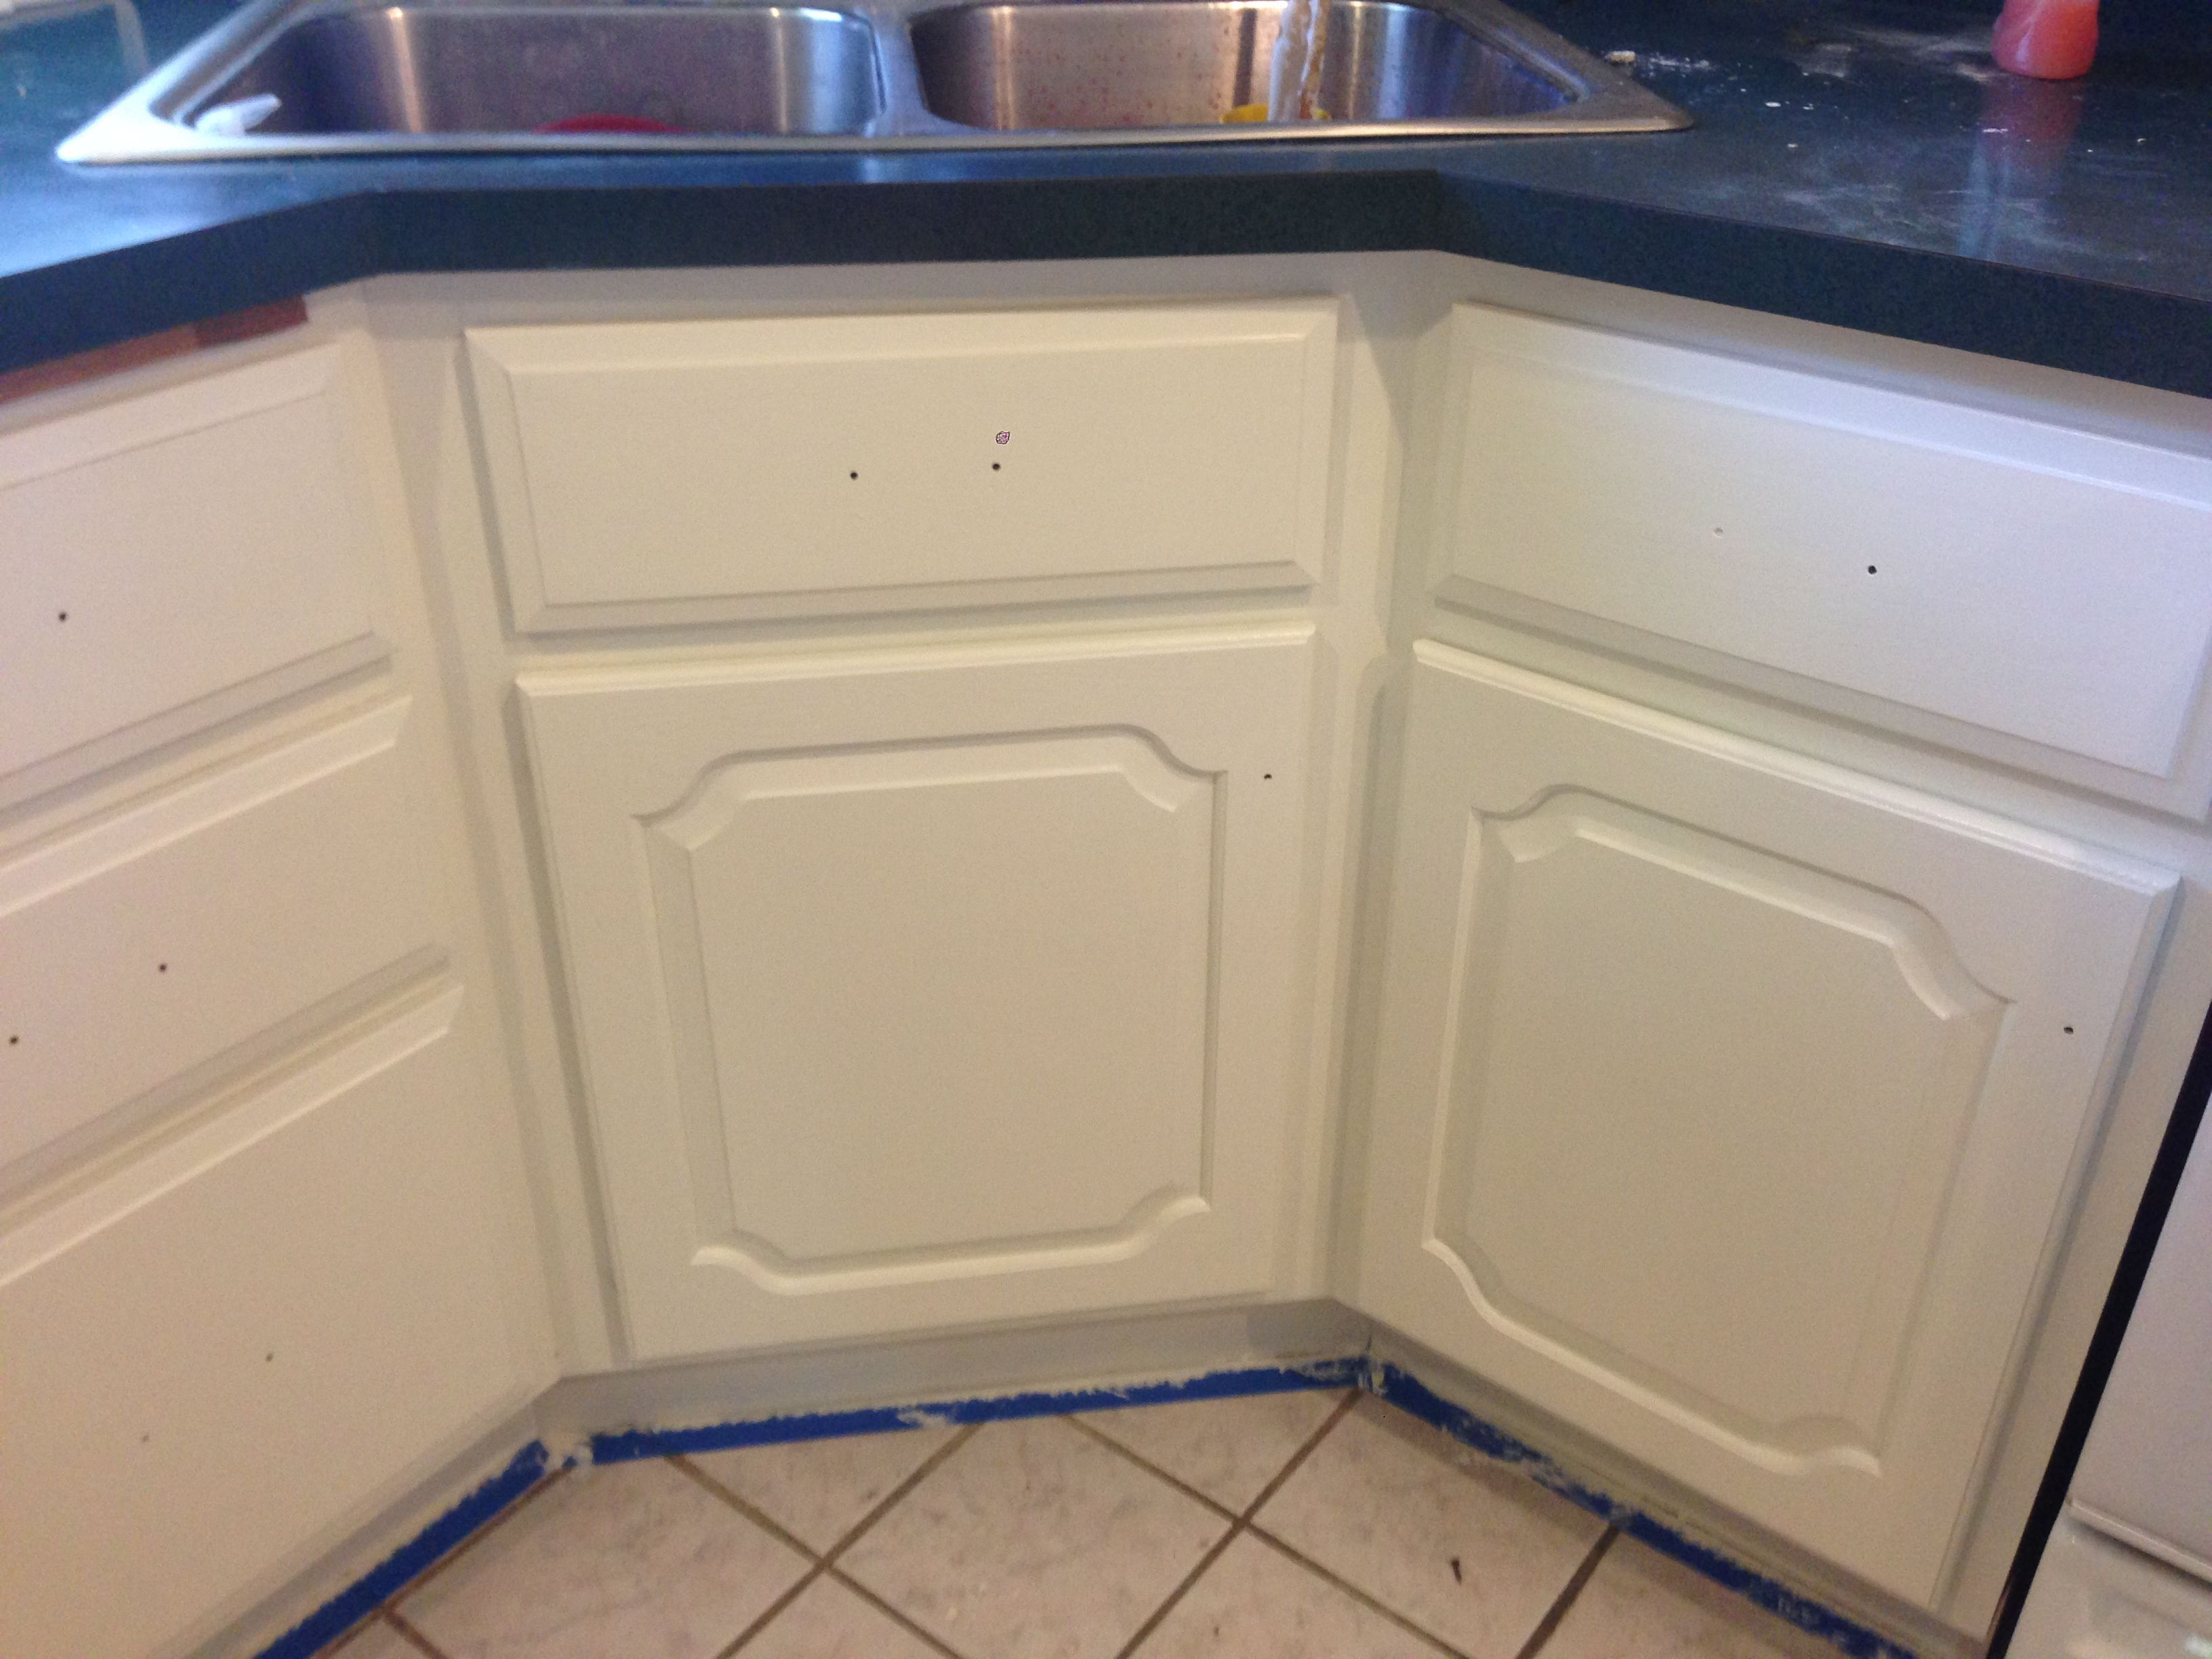 2nd Coat Sherwin Williams Proclassic Interior Waterbased Acrylic Alkyd Enamel Before Glazing It Delivers A Hig Home Appliances Washing Machine It Is Finished